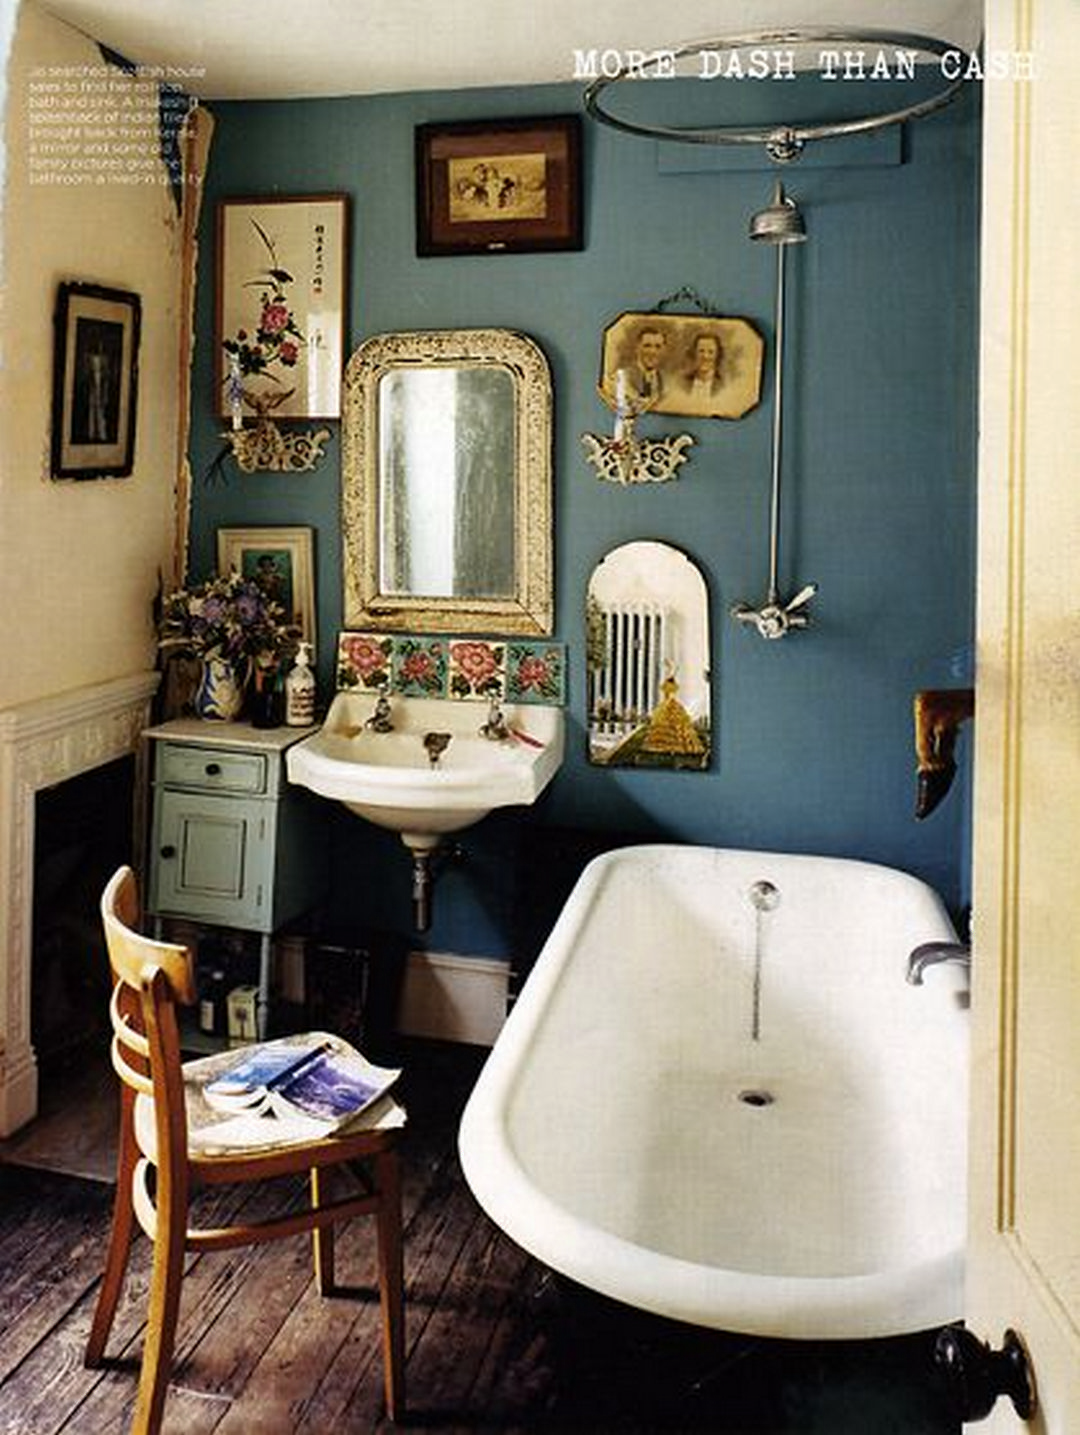 22 Eclectic Ideas Of Bathroom Wall Decor: Spicing It Up: 9 Decorating Hacks To Try In Your Living